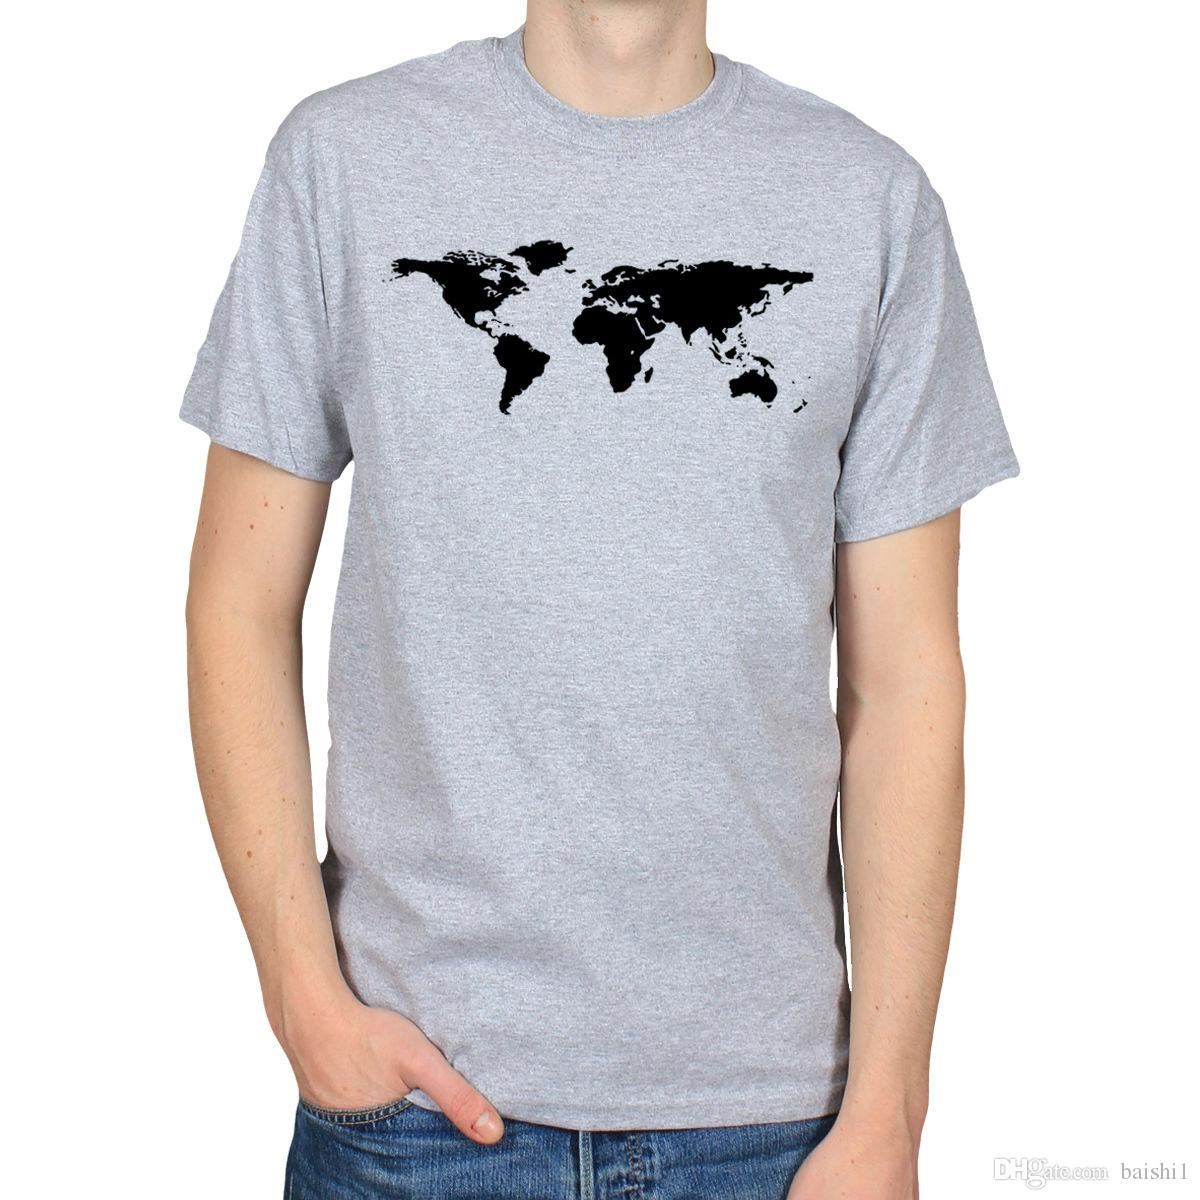 6422aa28 WORLD MAP GEOGRAPHY ATLAS EARTH GLOBE NATION COUNTRY HIPSTER MENS T SHIRT  TEE Men'S Funny Harajuku T Shirts Best T Shirt Online Buy Funky T Shirts  Online ...